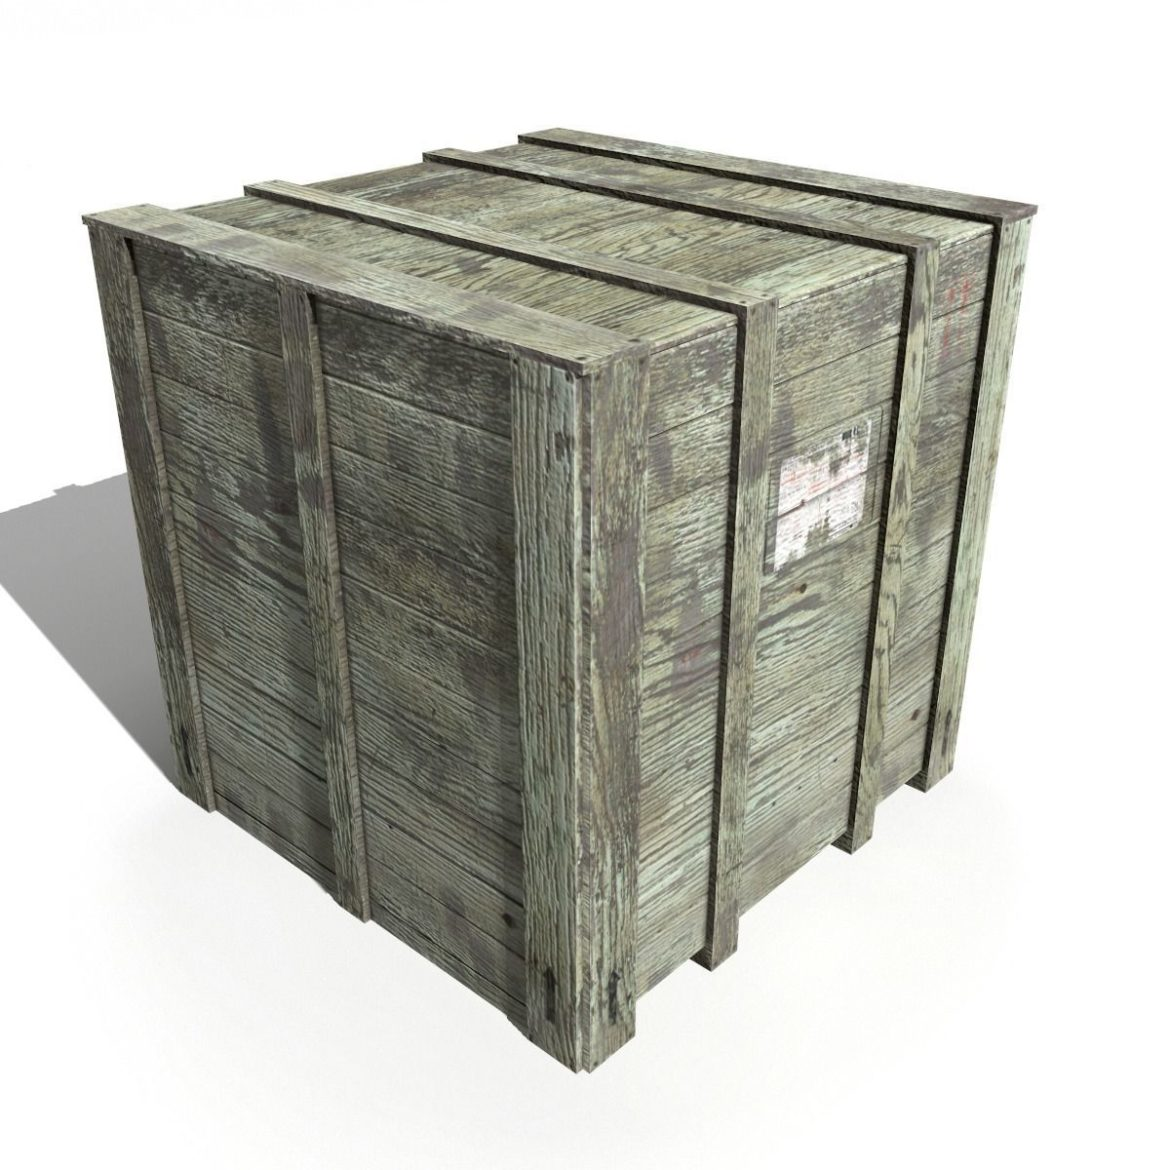 transport crates pack 3 3d model fbx obj 319437